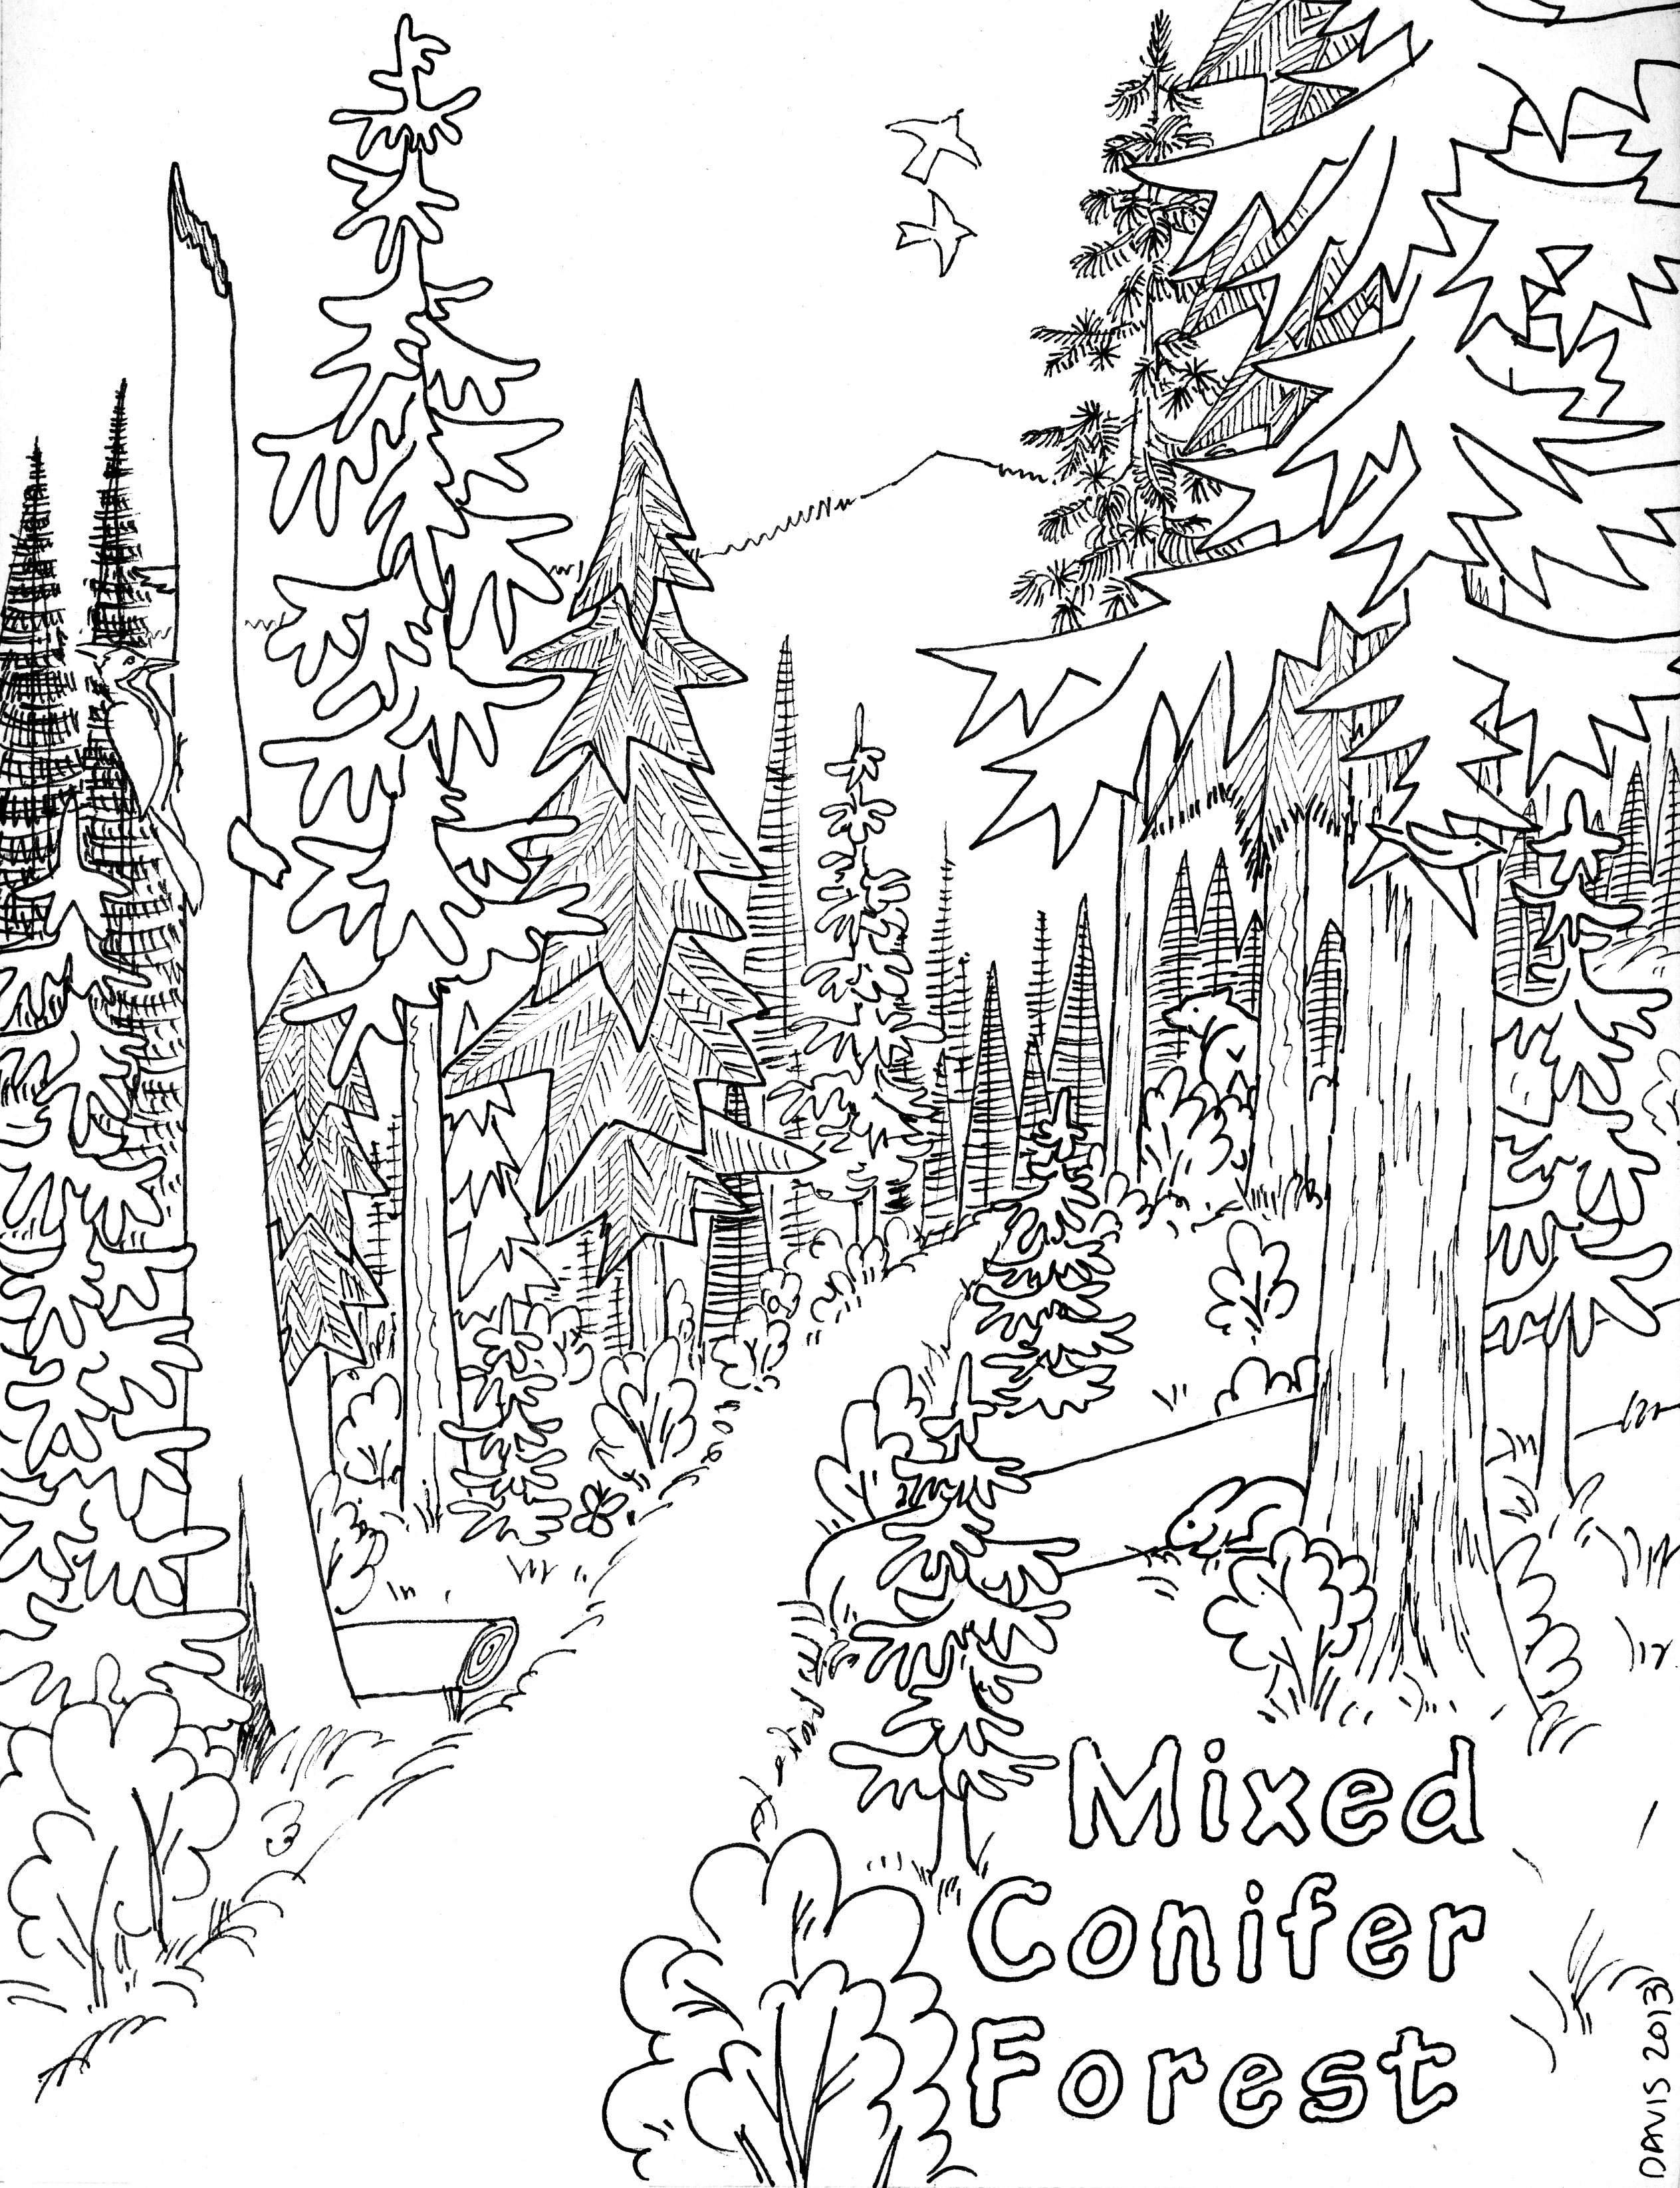 Forest Biome: Forest Biome Coloring Pages